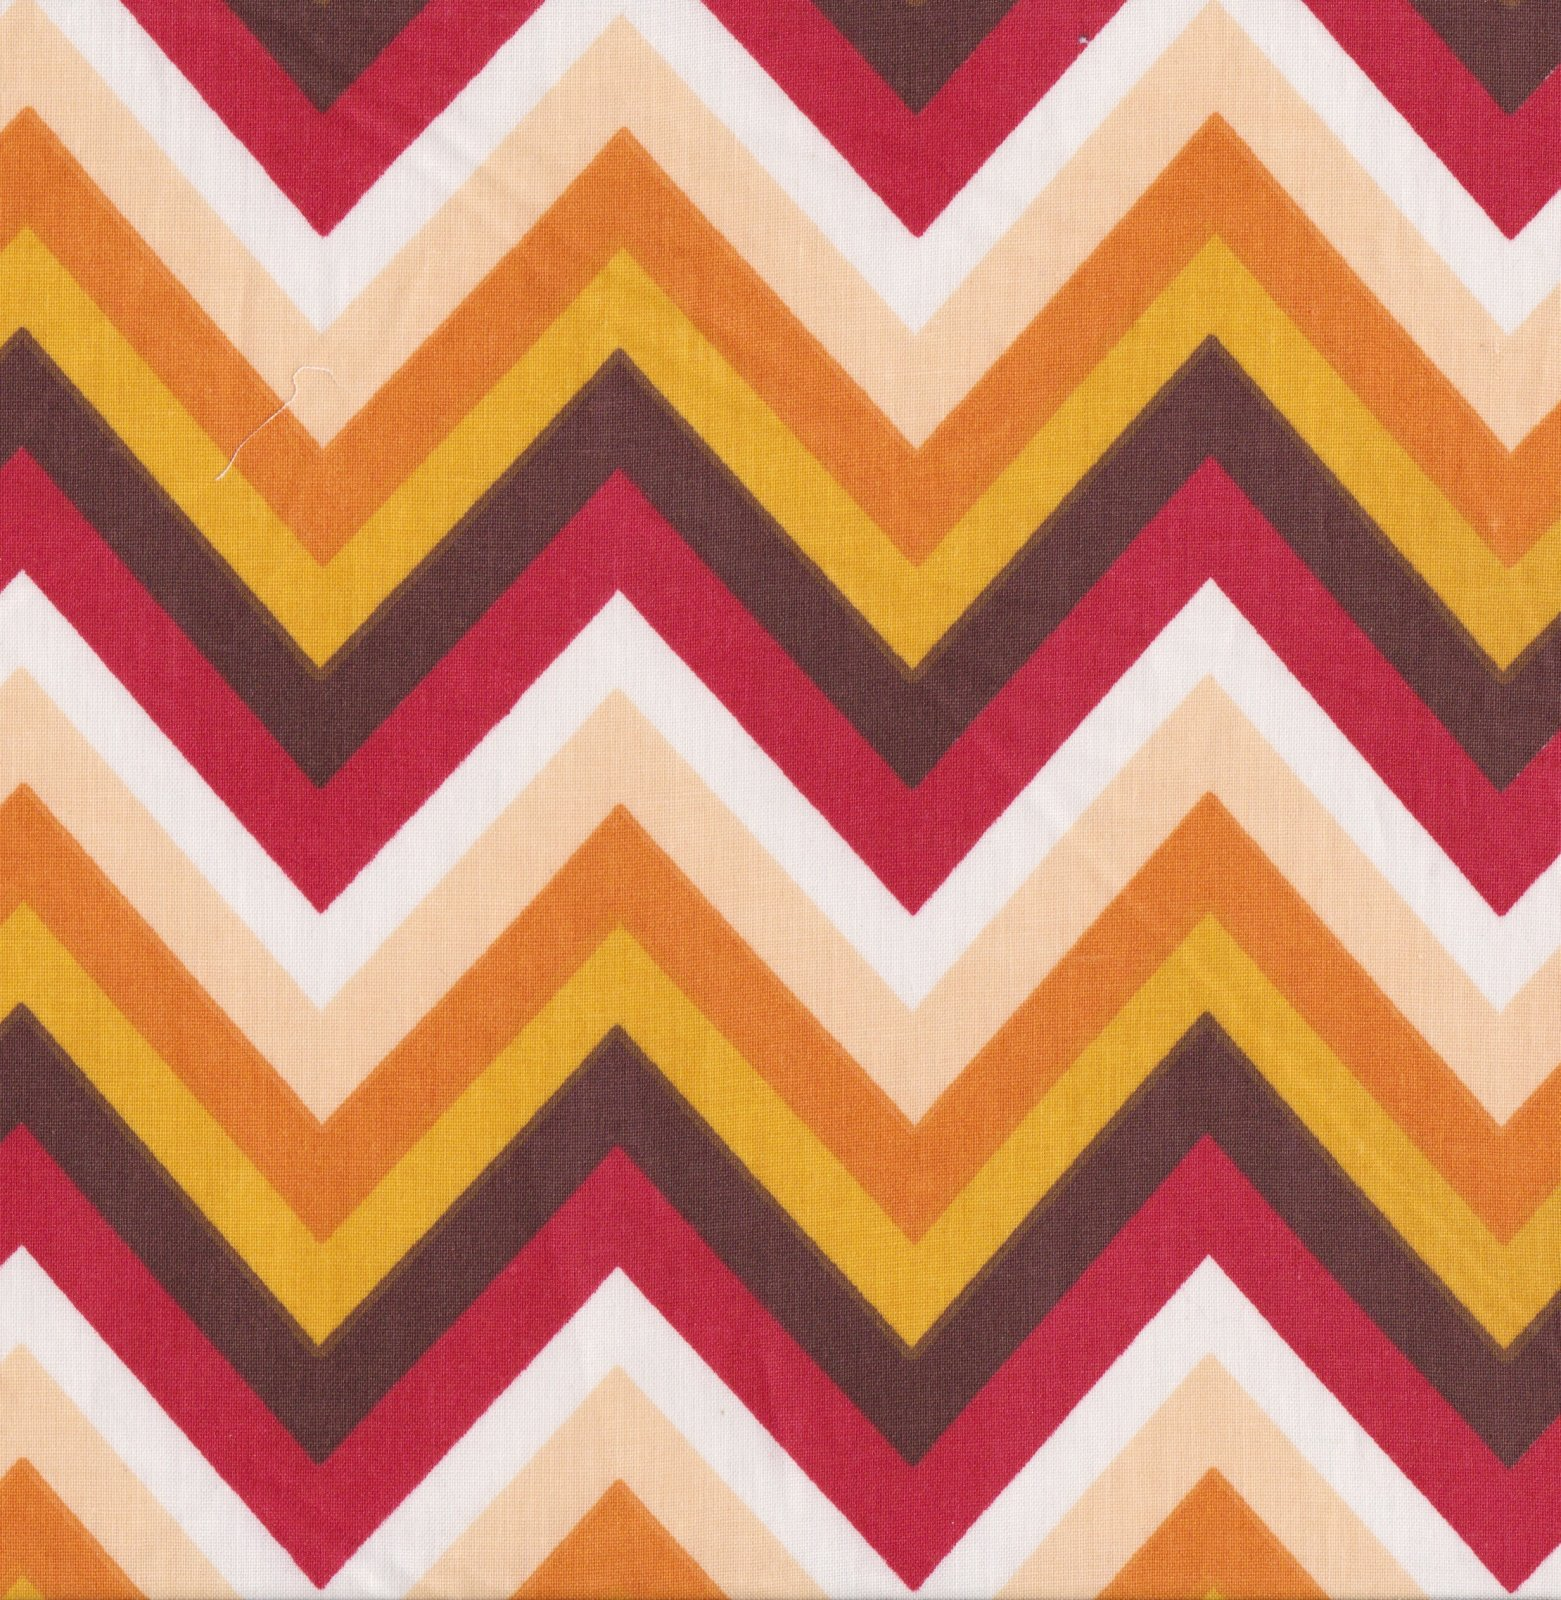 PROMO* FT-Chevron Prints - Orange & Red